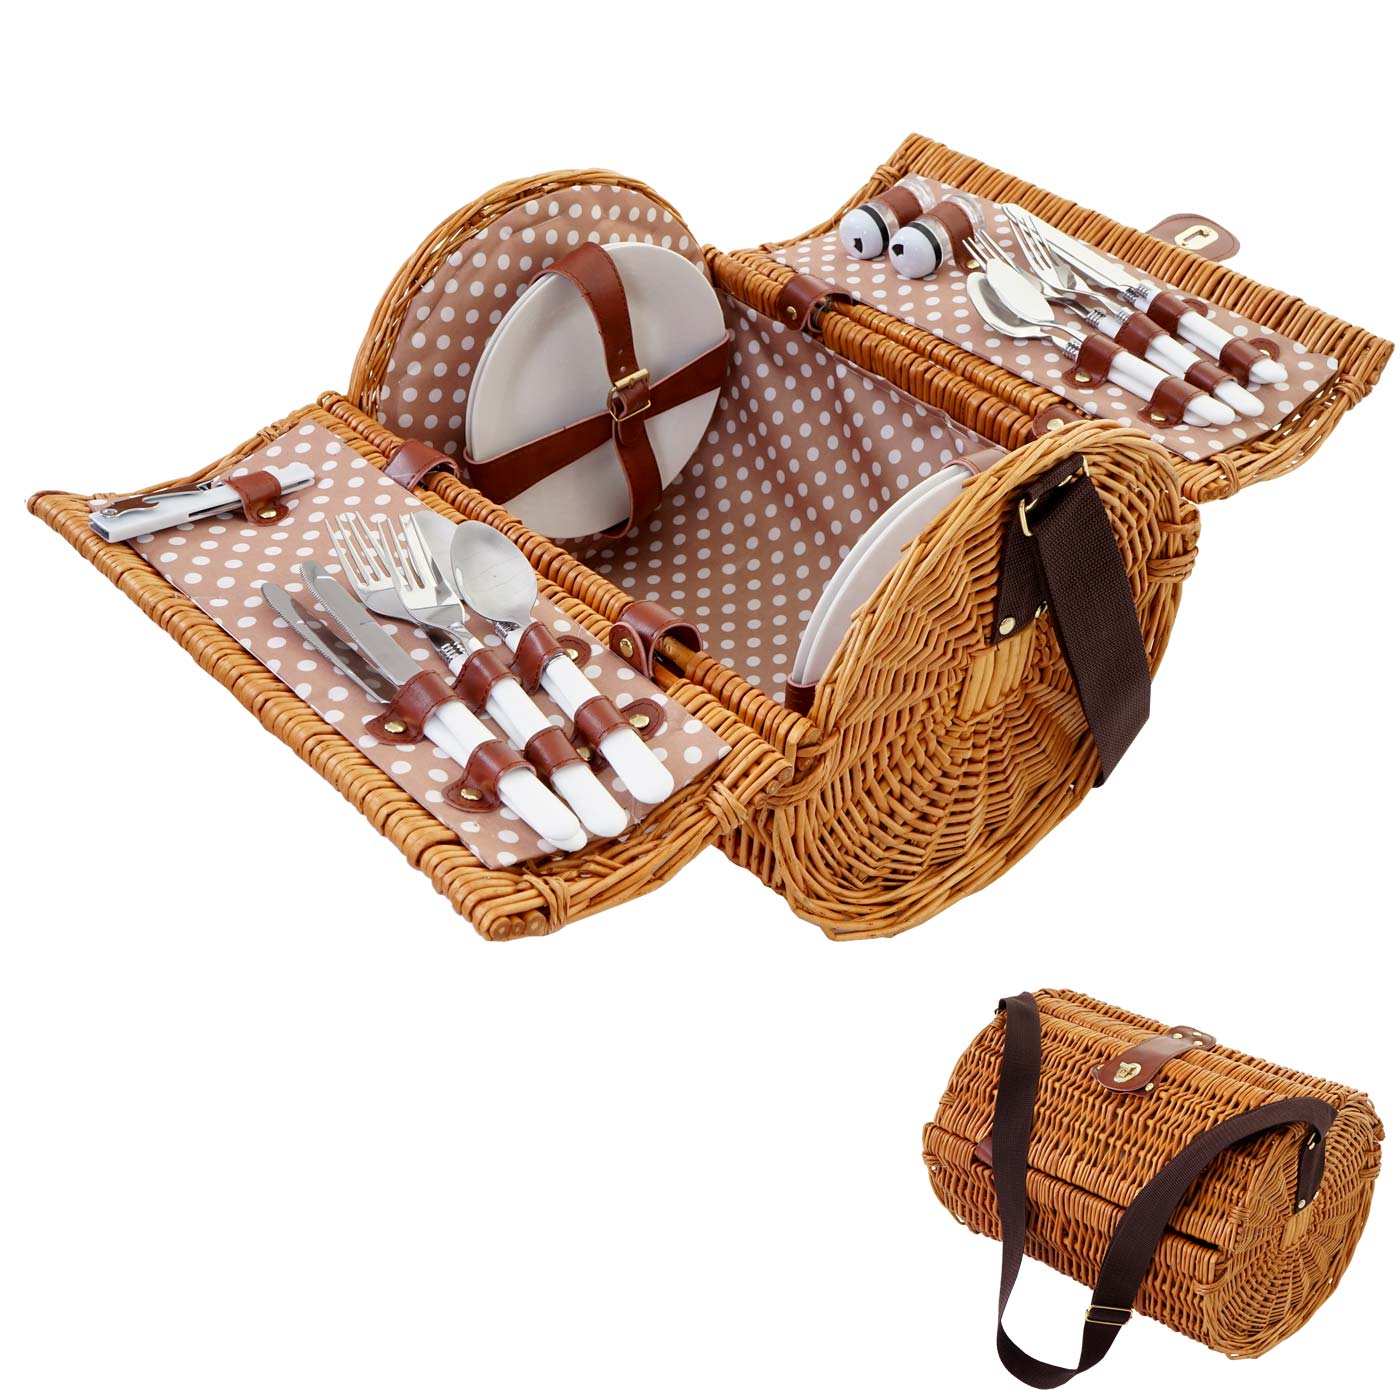 picknickkorb set f r 4 personen picknicktasche weiden korb porzellan edelstahl beige wei. Black Bedroom Furniture Sets. Home Design Ideas